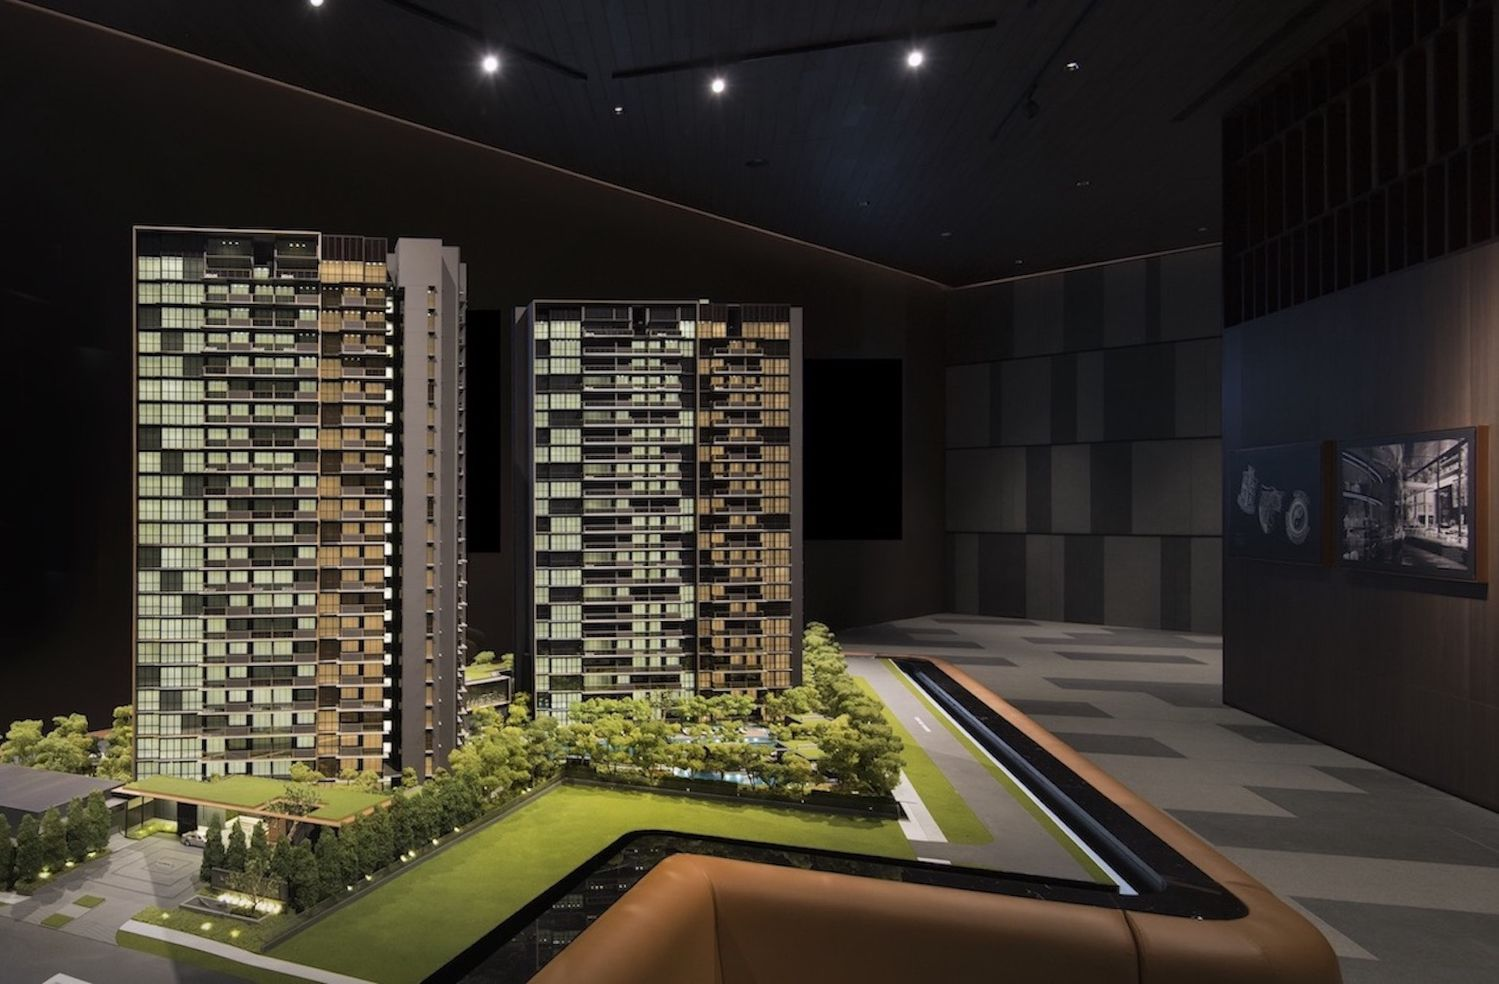 EDGEPROP SINGAPORE - Projects' sales galleries are not allowed to open until further notice, according to URA (Photo: Albert Chua/EdgeProp Singapore) - EDGEPROP SINGAPORE